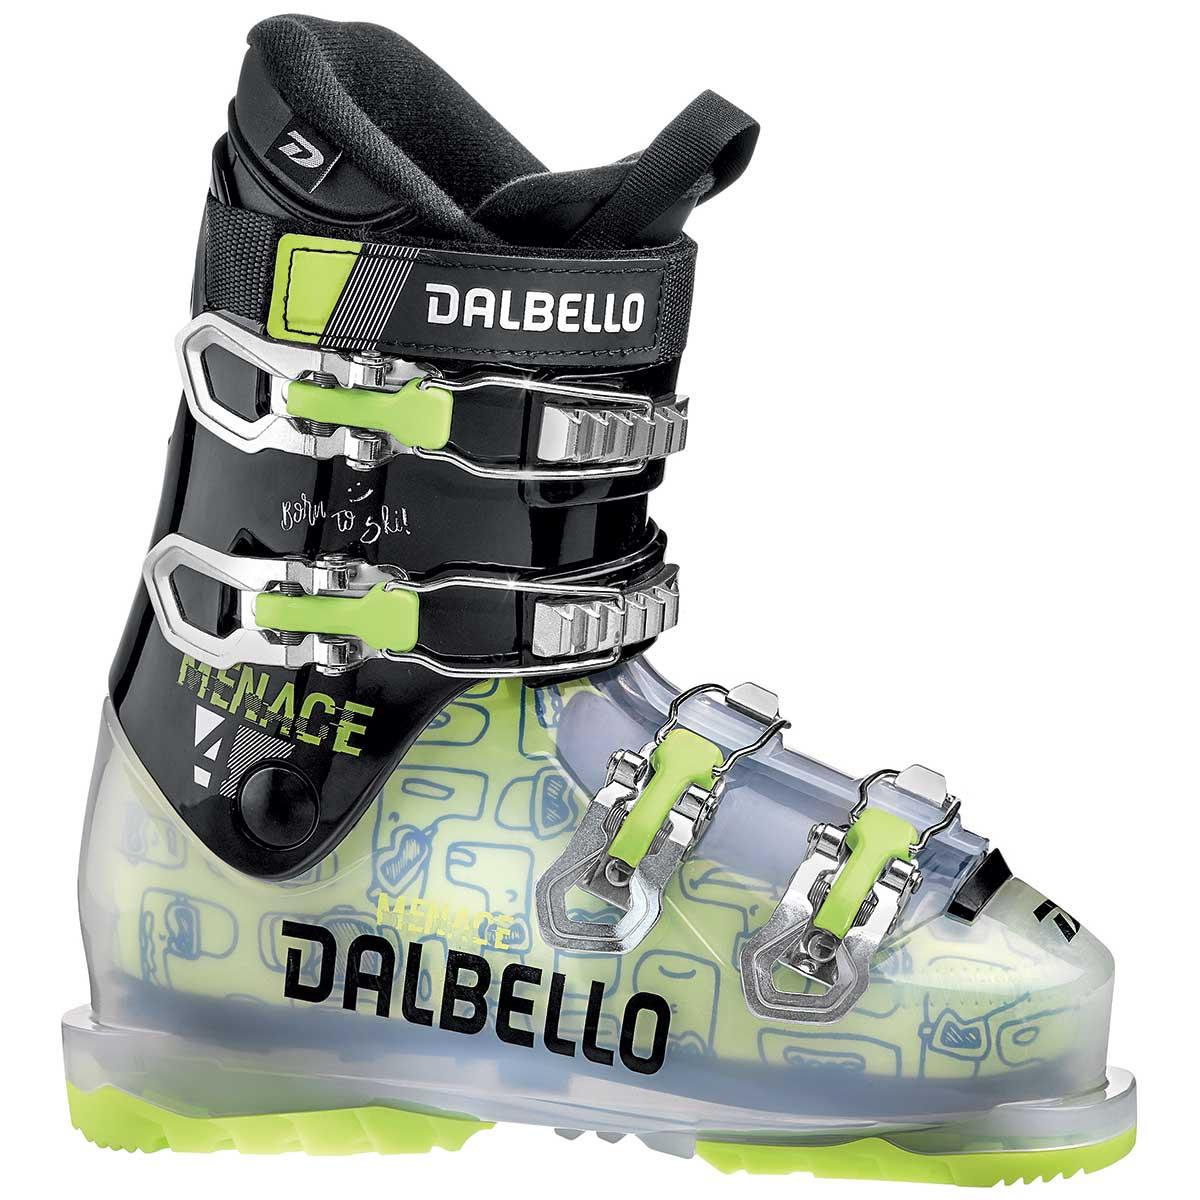 Dalbello Menace 4 junior ski boot in trans black